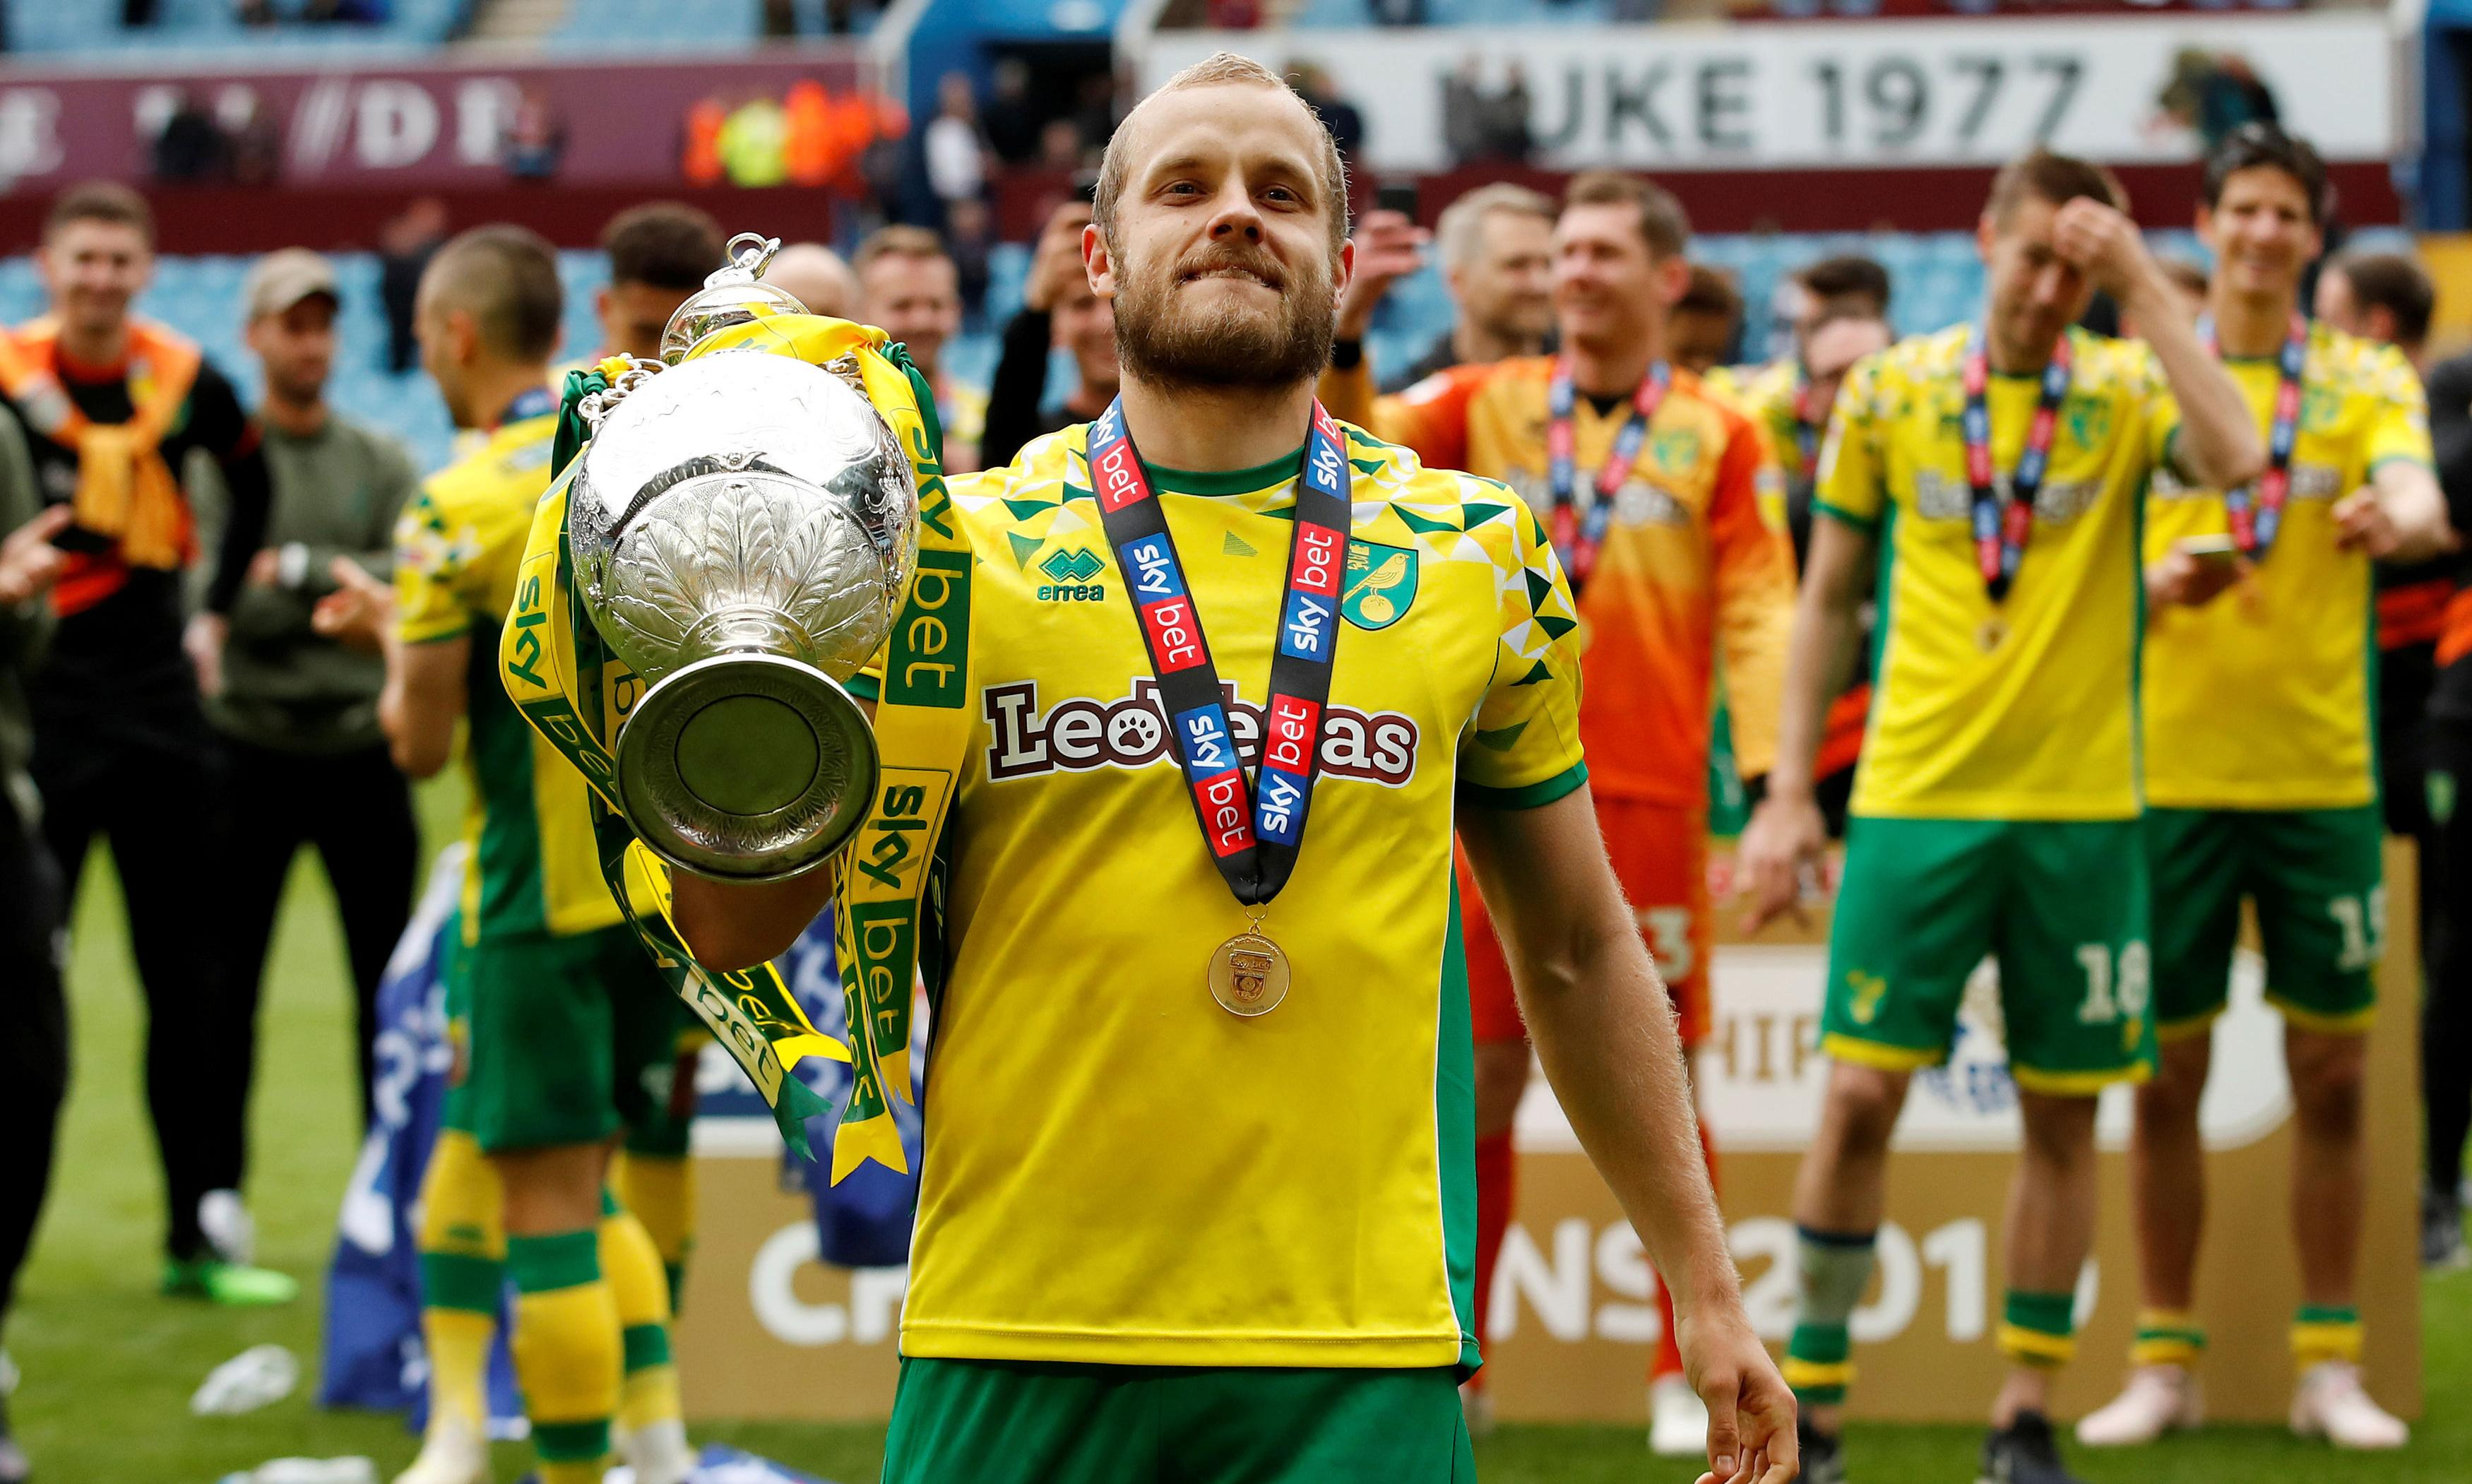 Norwich spurn spending spree as promoted sides stay cautious